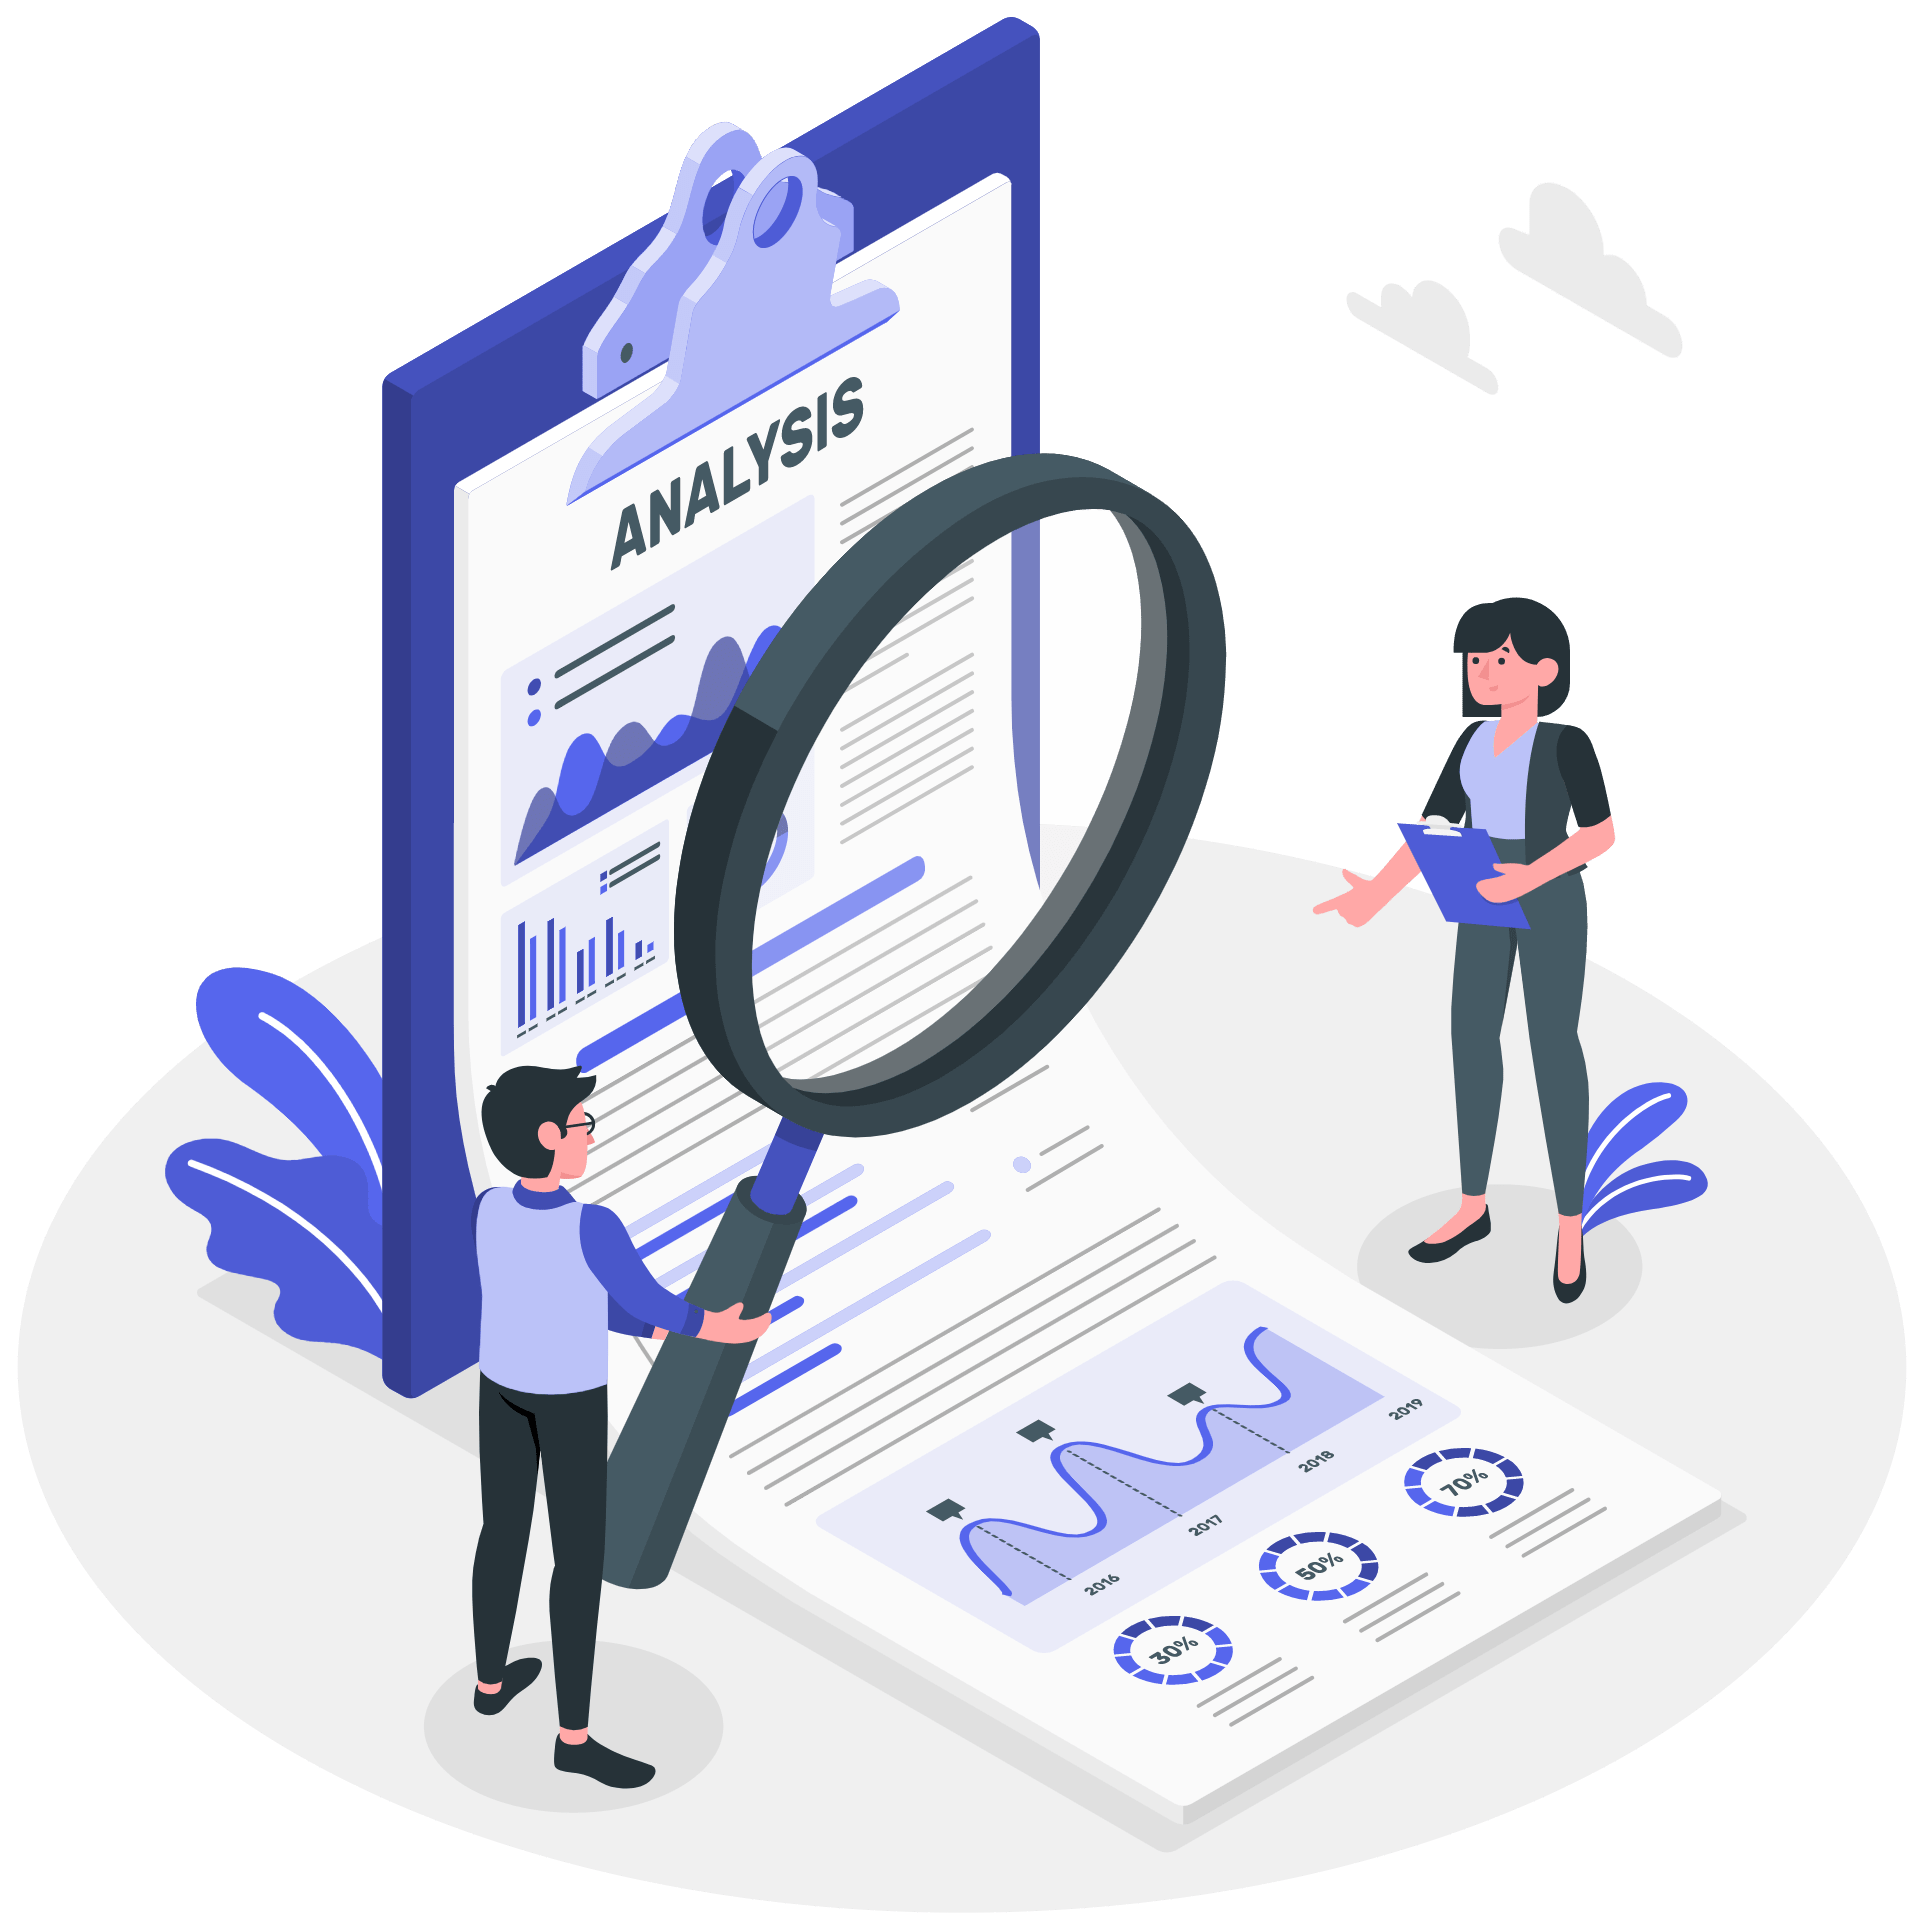 what is sales team training? a process where sales reps develop soft and hard skills and align themselves to the company goals